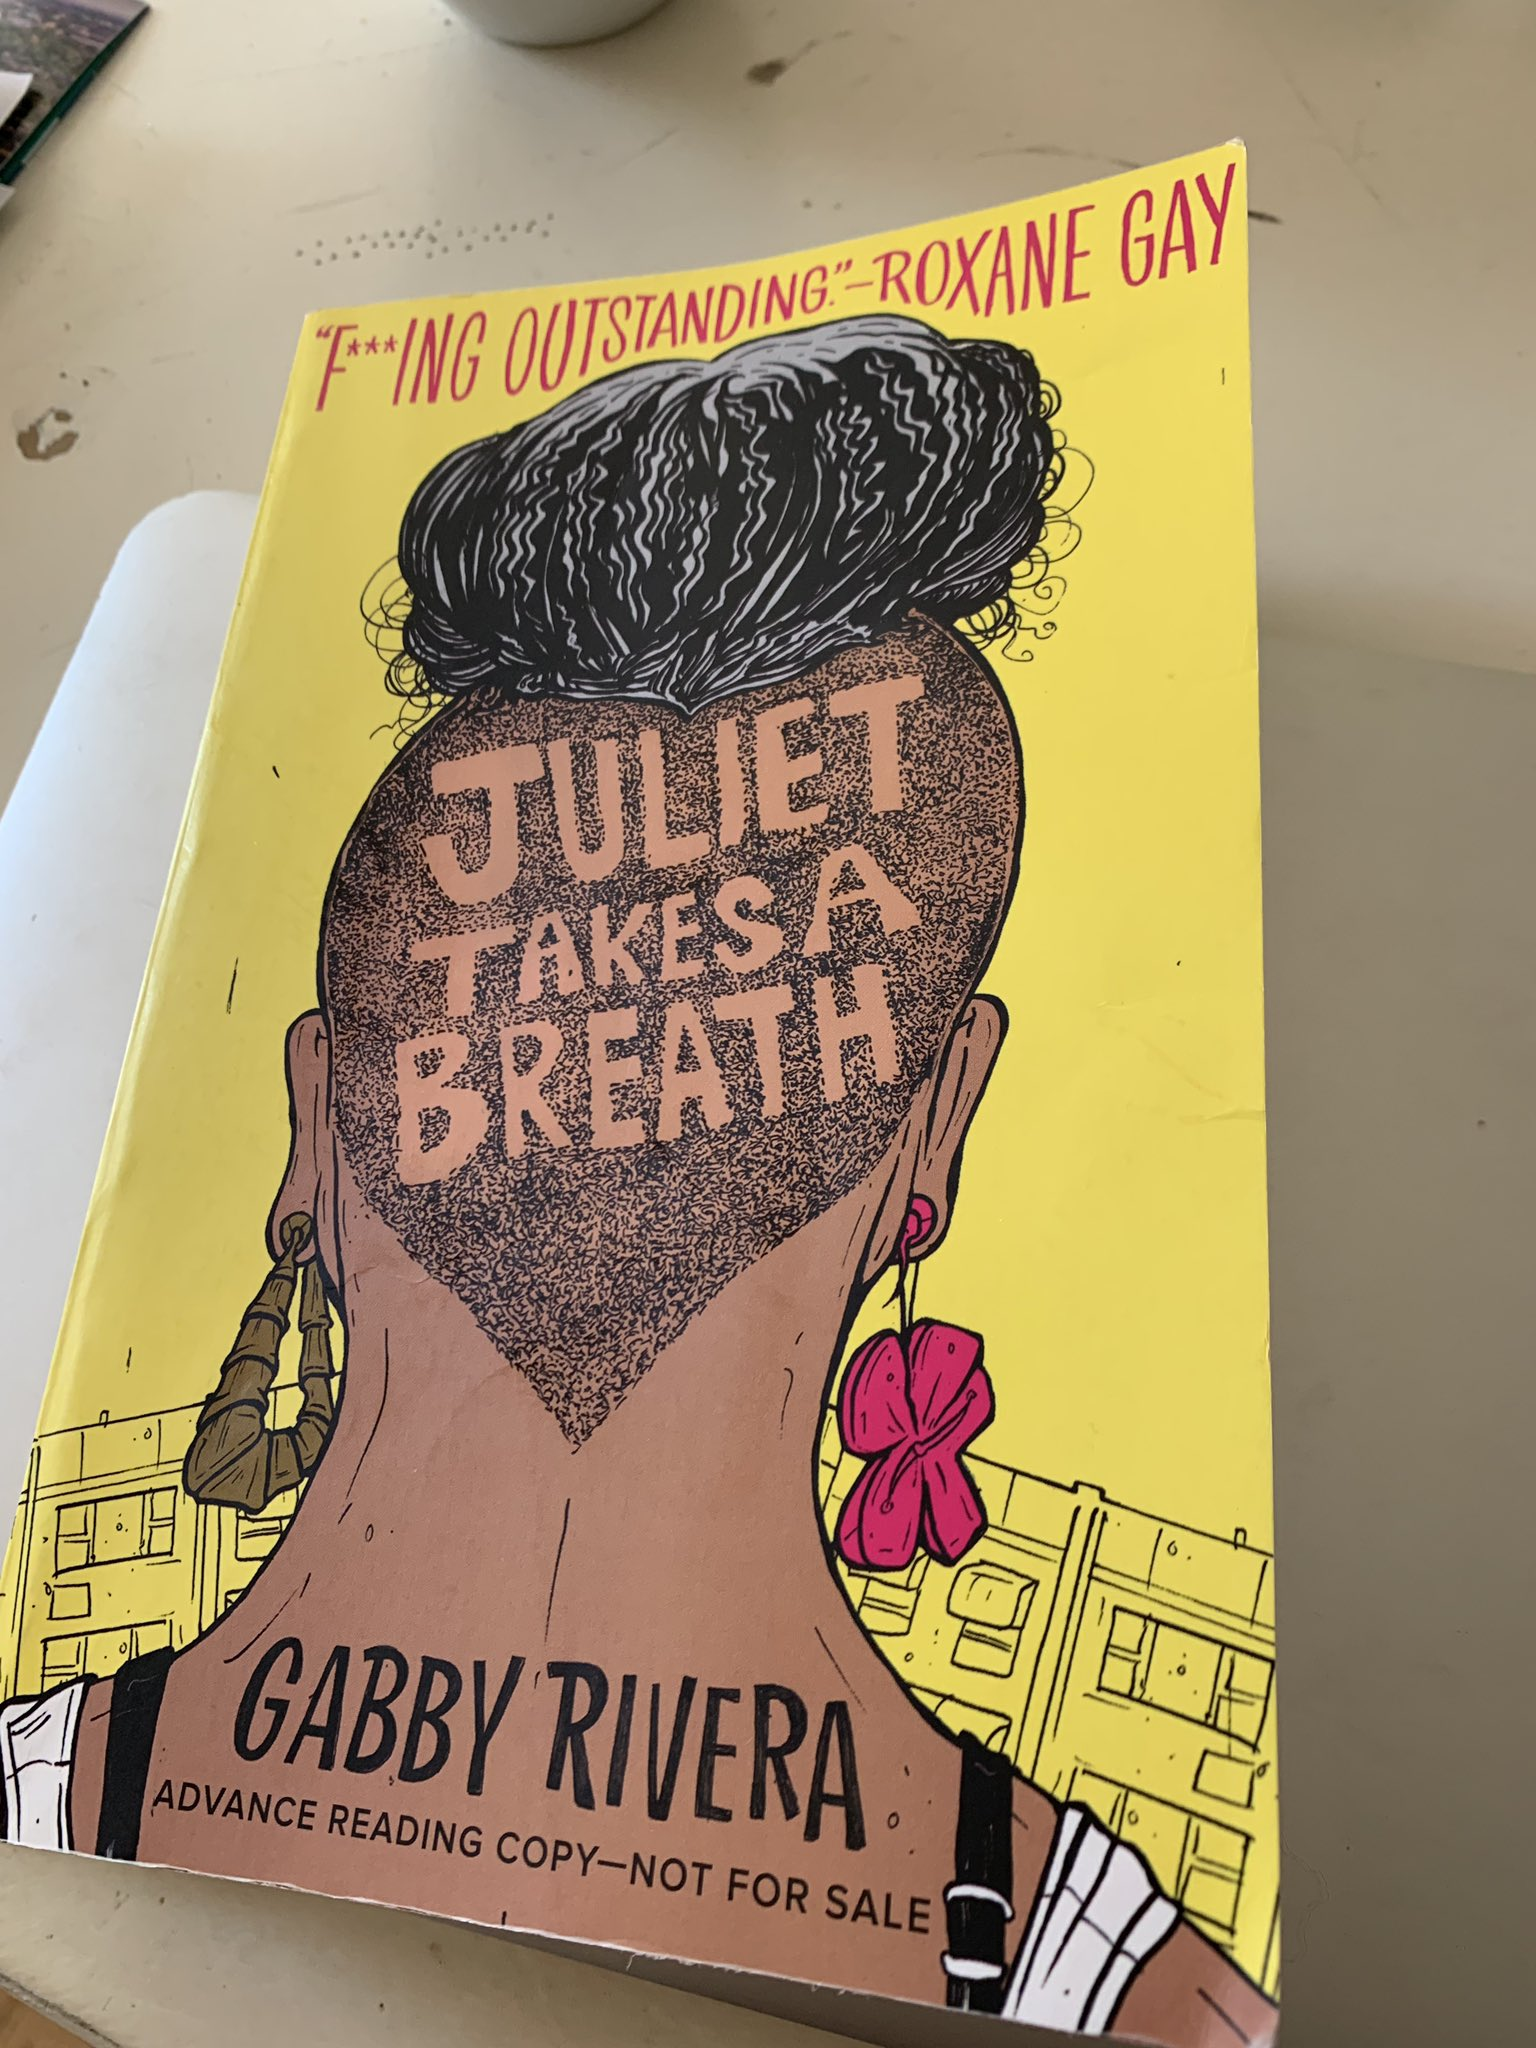 This is hands down the best book I have read in a while by @QuirkyRican. @rgay is right except double f***ing outstanding. https://t.co/veMupmmLxW